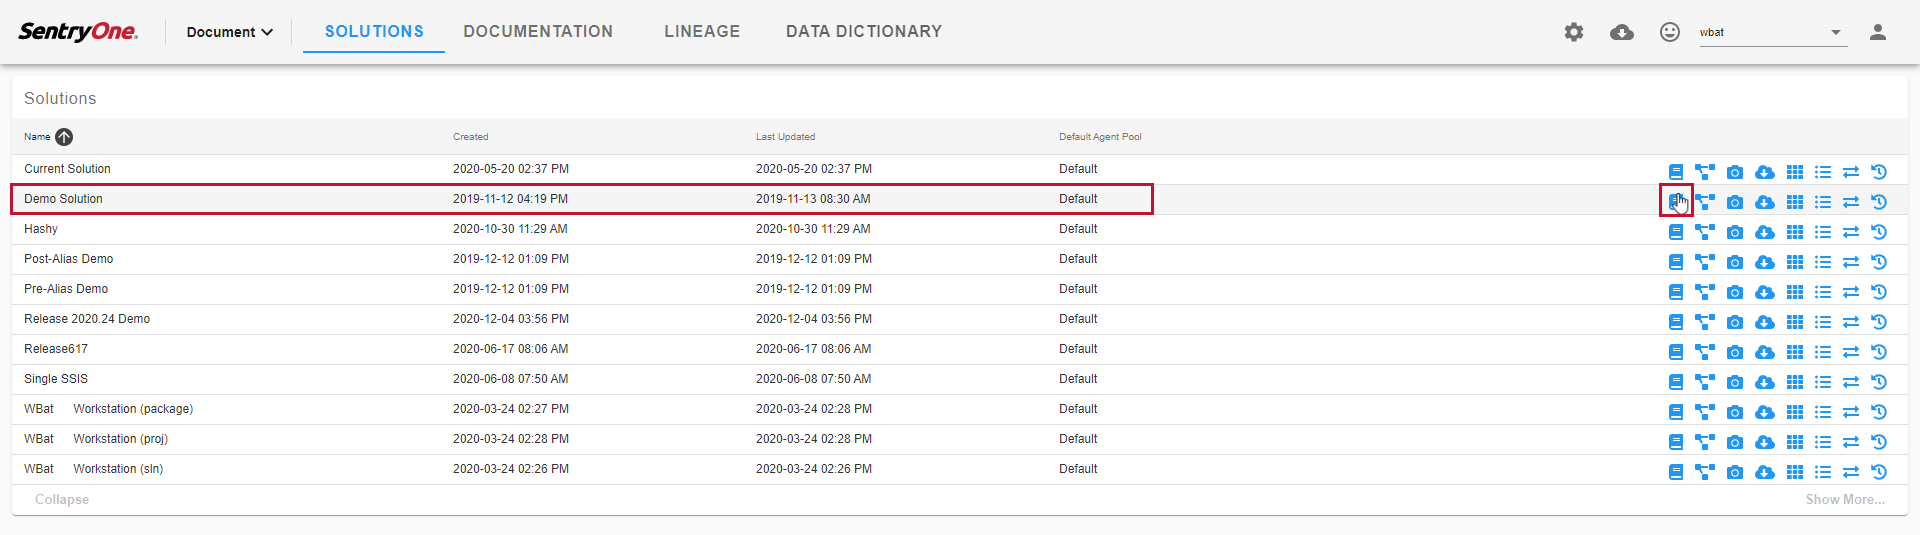 SentryOne Document Solutions Dashboard View Documentation